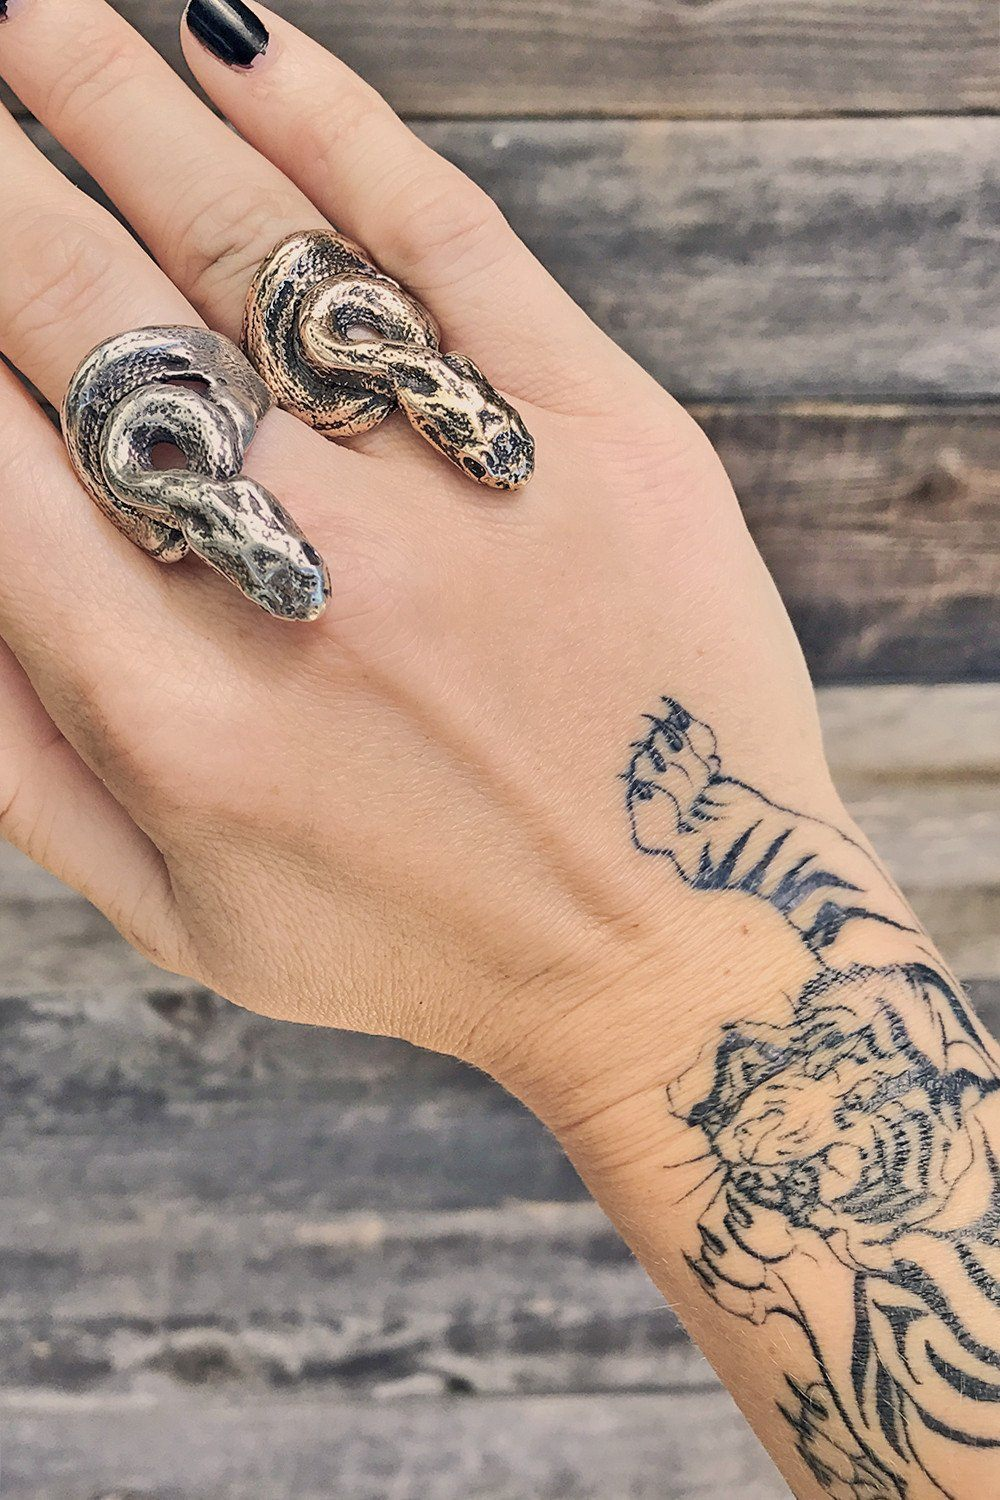 PRE-ORDER The Ishta Snake Ring By Earthling Jewelry, Jewelry, Earthling, BACKBITE